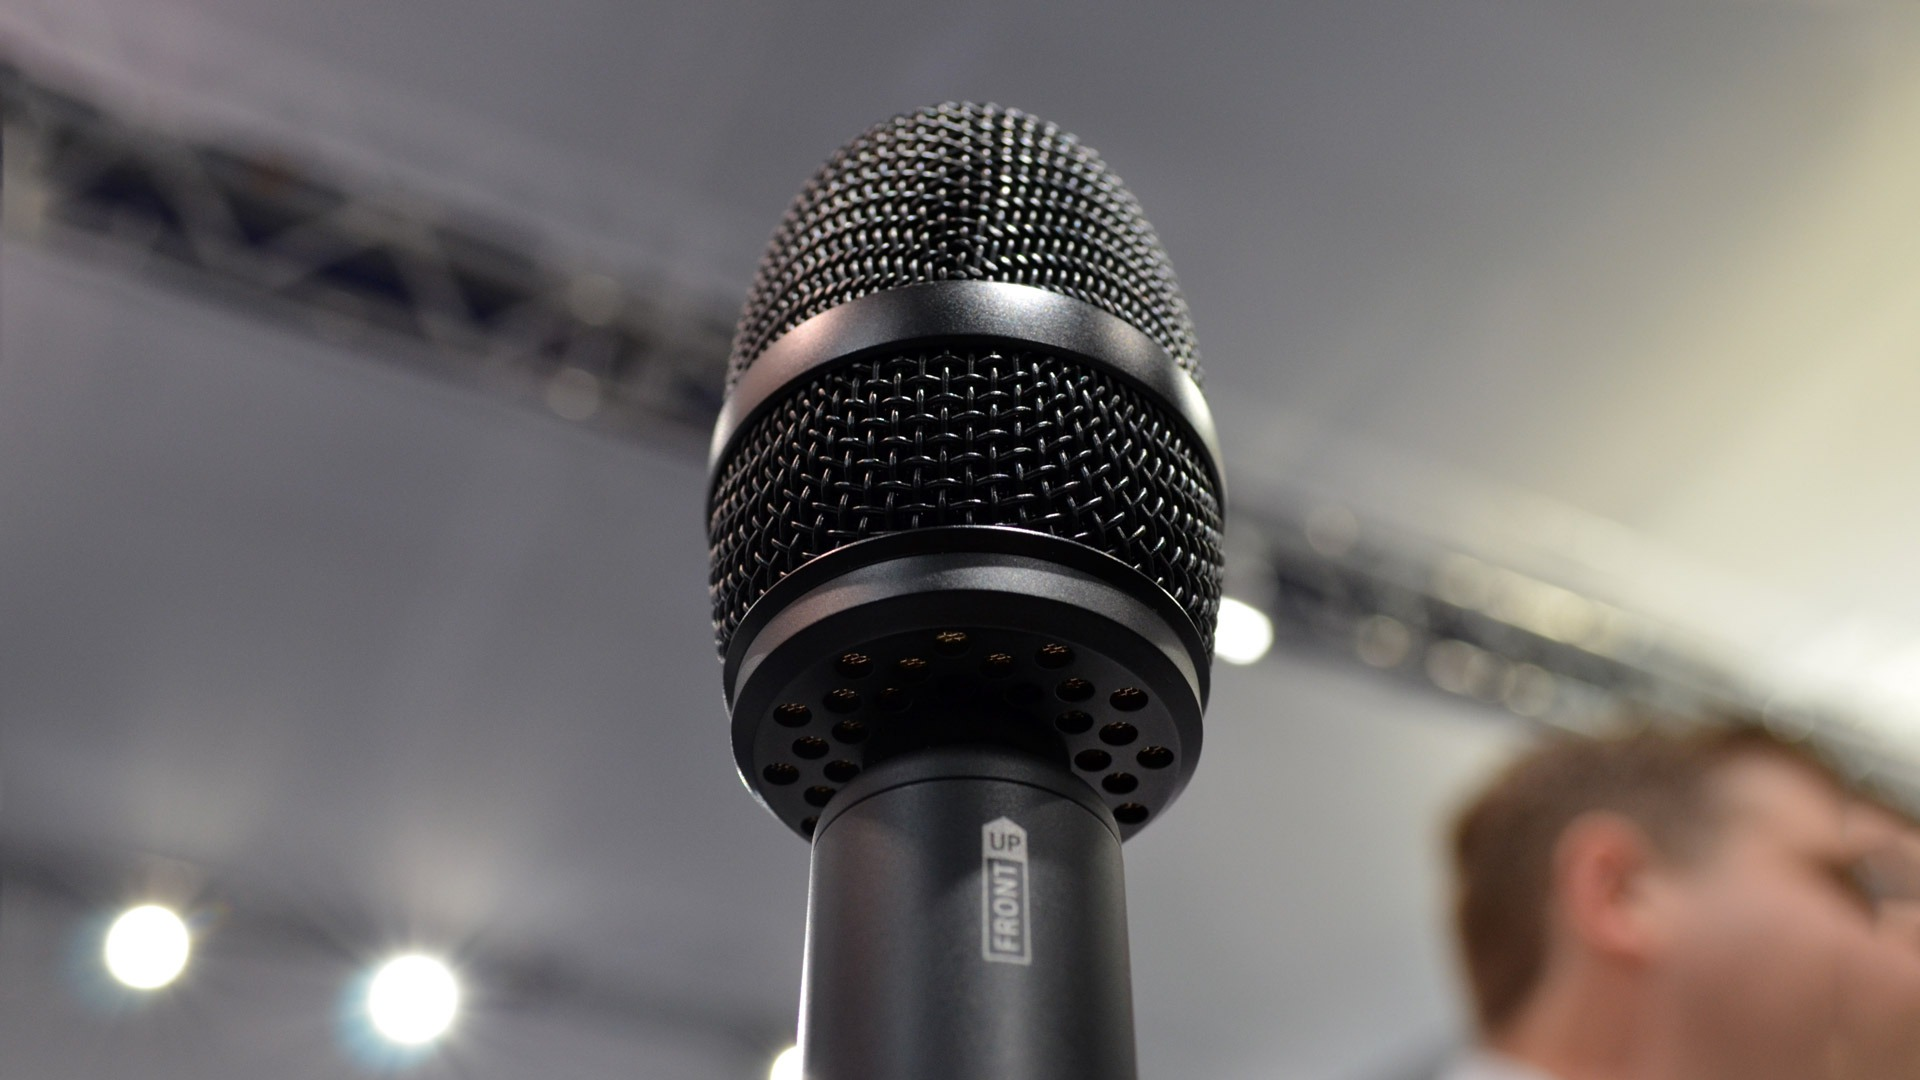 Up Close With Sennheisers 1700 Vr Microphone Road To Power Pc Microphones From P48 Or Phantom 48 Volts Sennheiser Mic Ces 2017 4